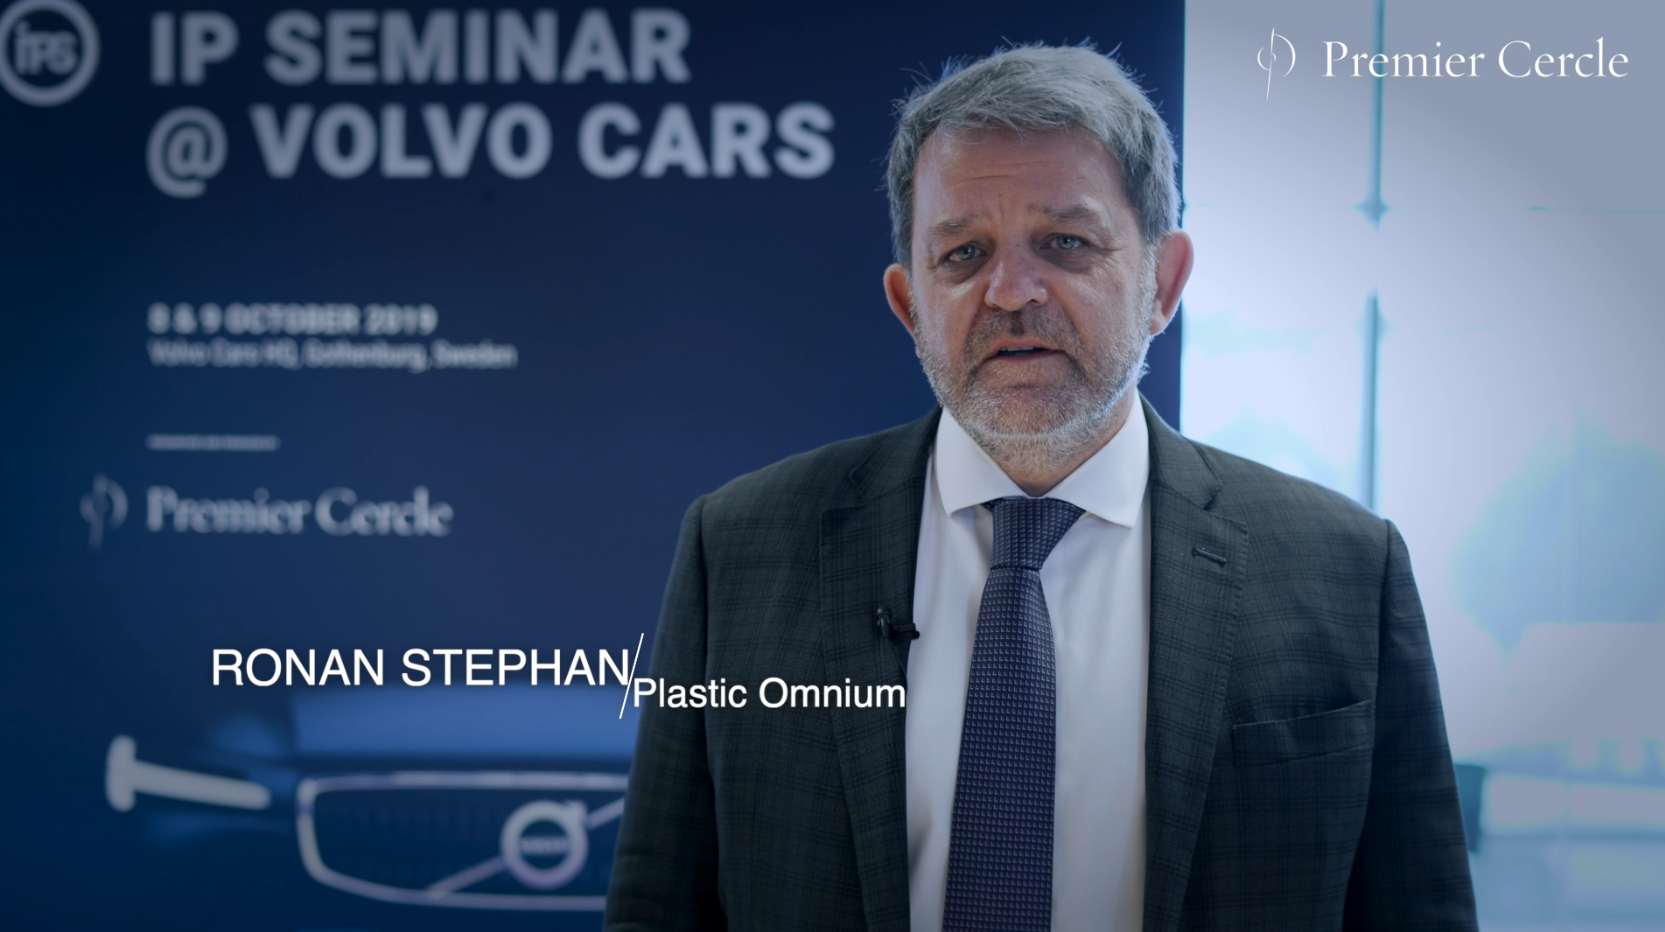 Ronan Stephan from Plastic Omnium interviewed by Premier Cercle